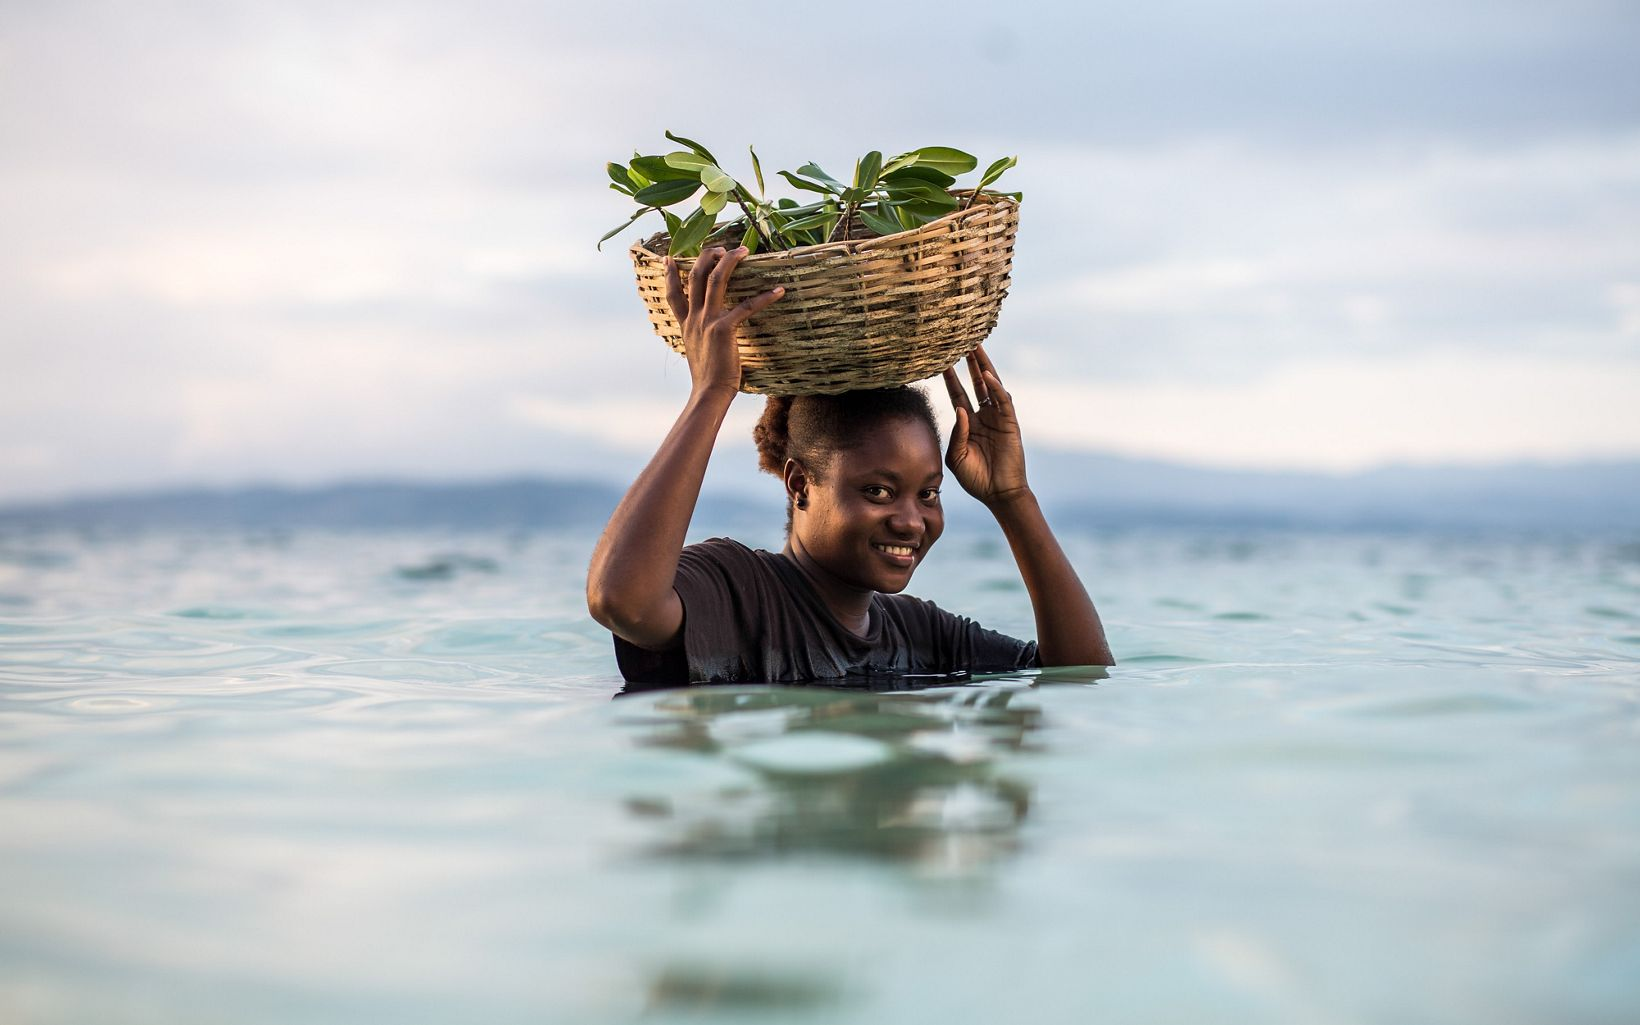 a woman stands in chest-deep water with a basket of mangrove seedlings on her head